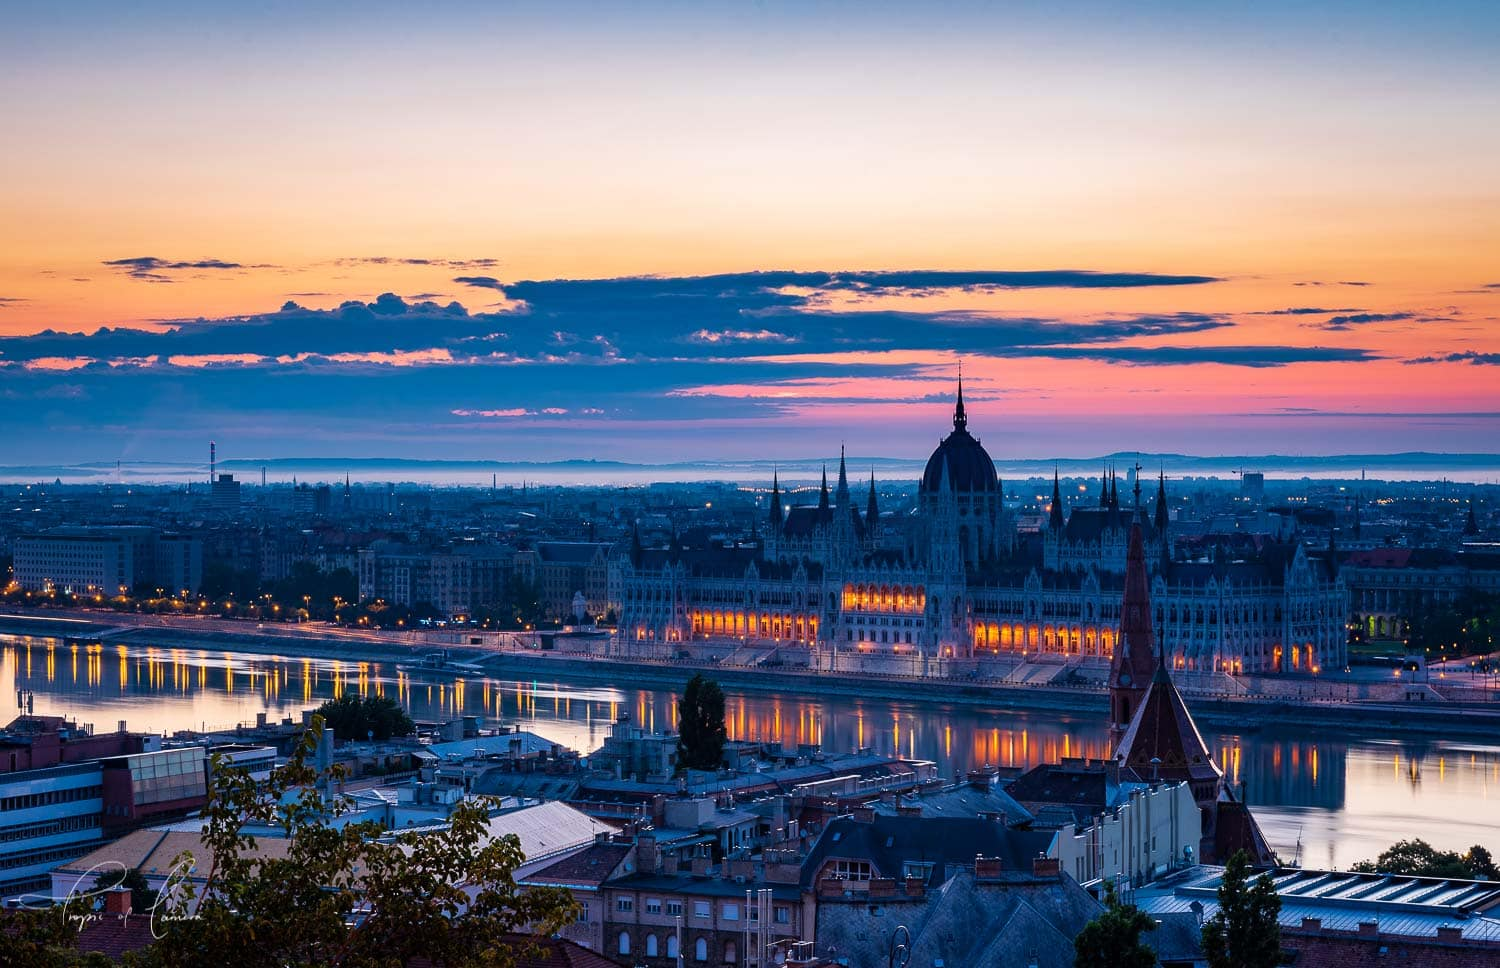 Sunrise over the Parliament building, Budapest, Hungary